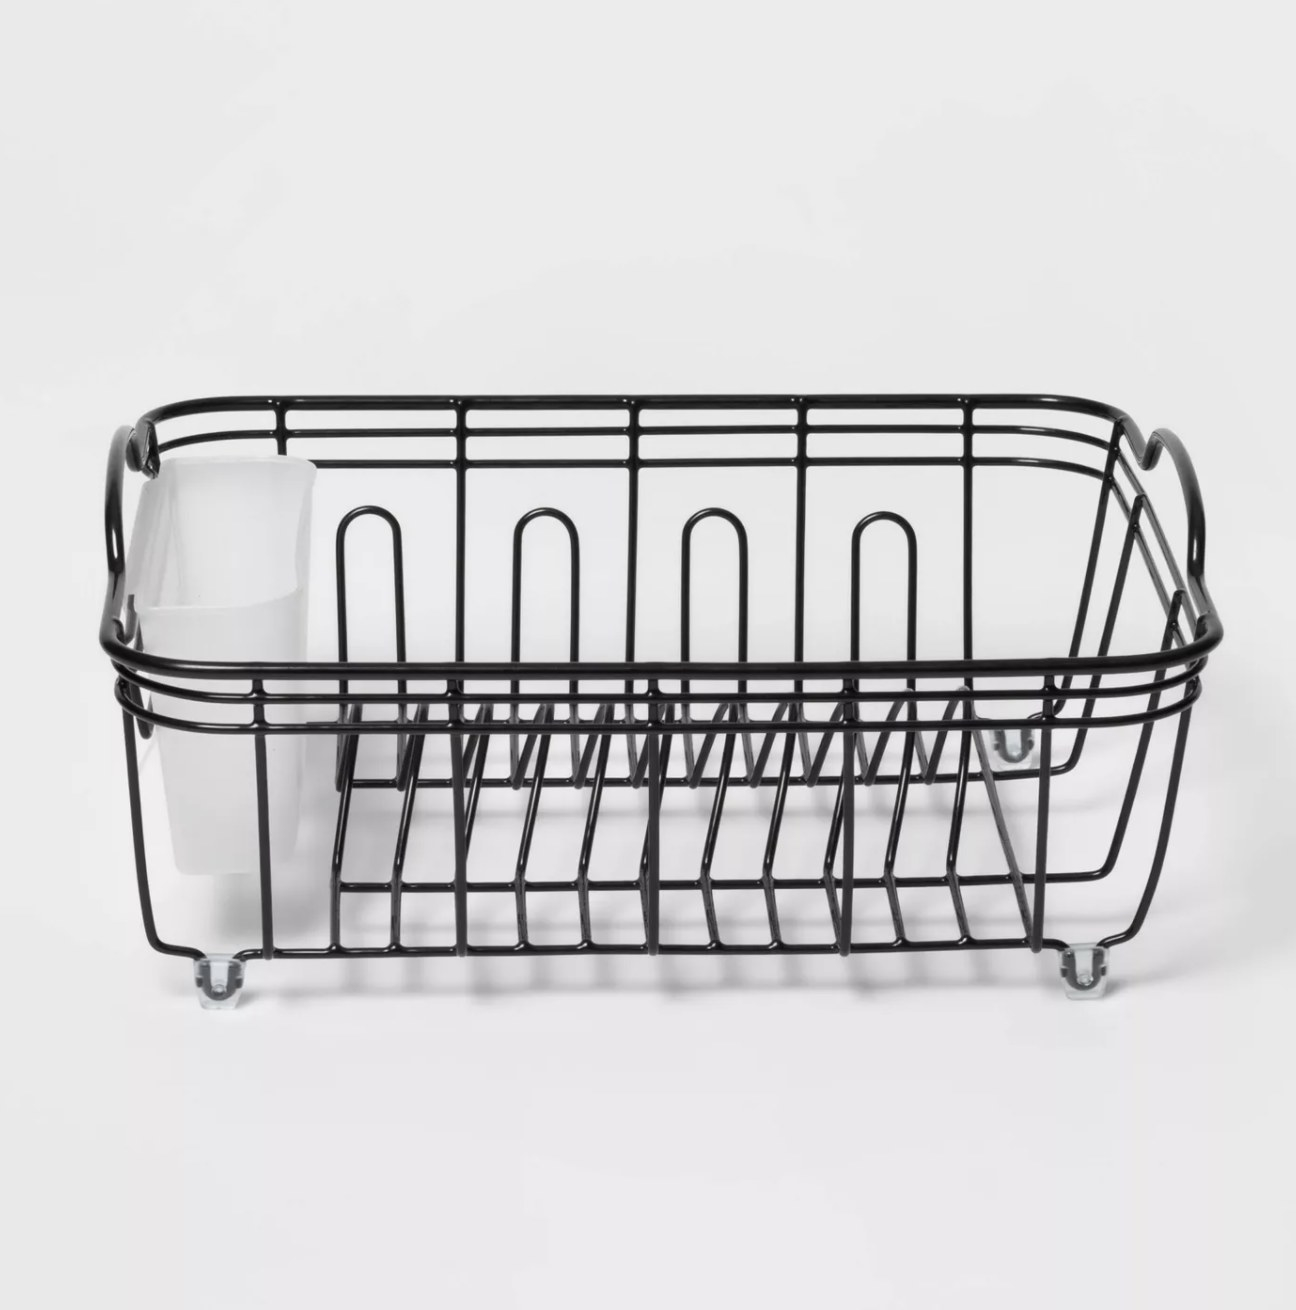 A dish drainer